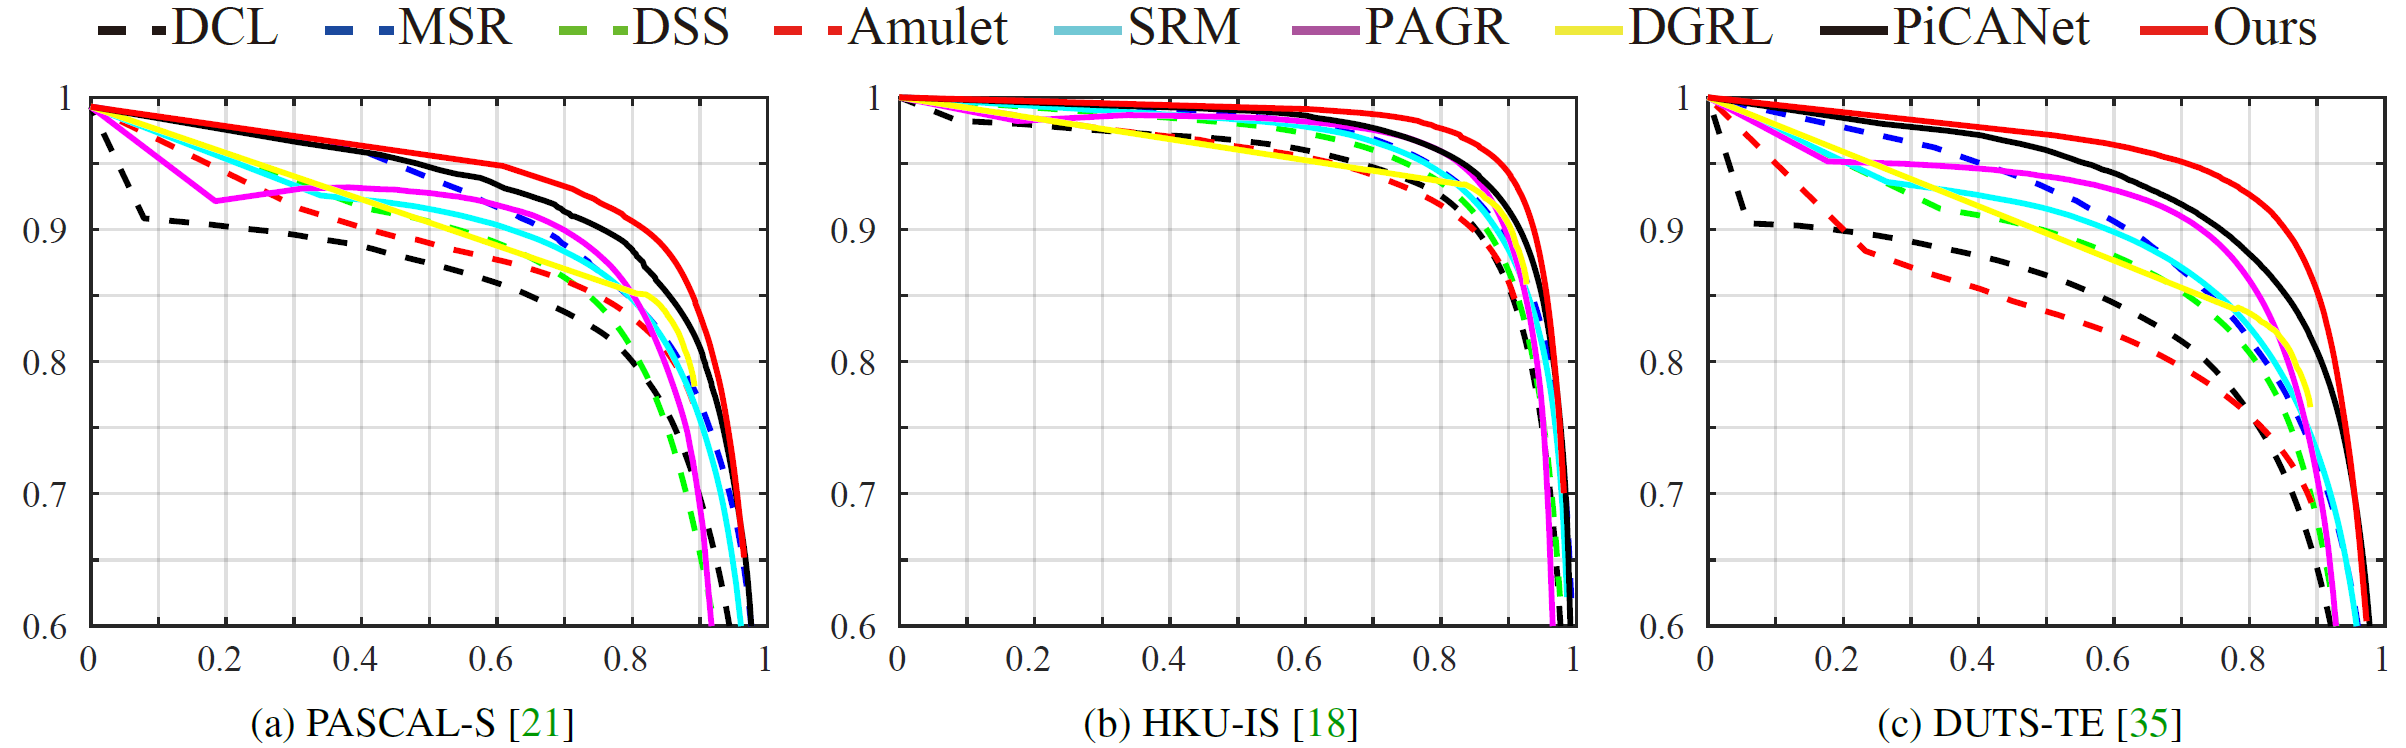 A Simple Pooling-Based Design for Real-Time Salient Object